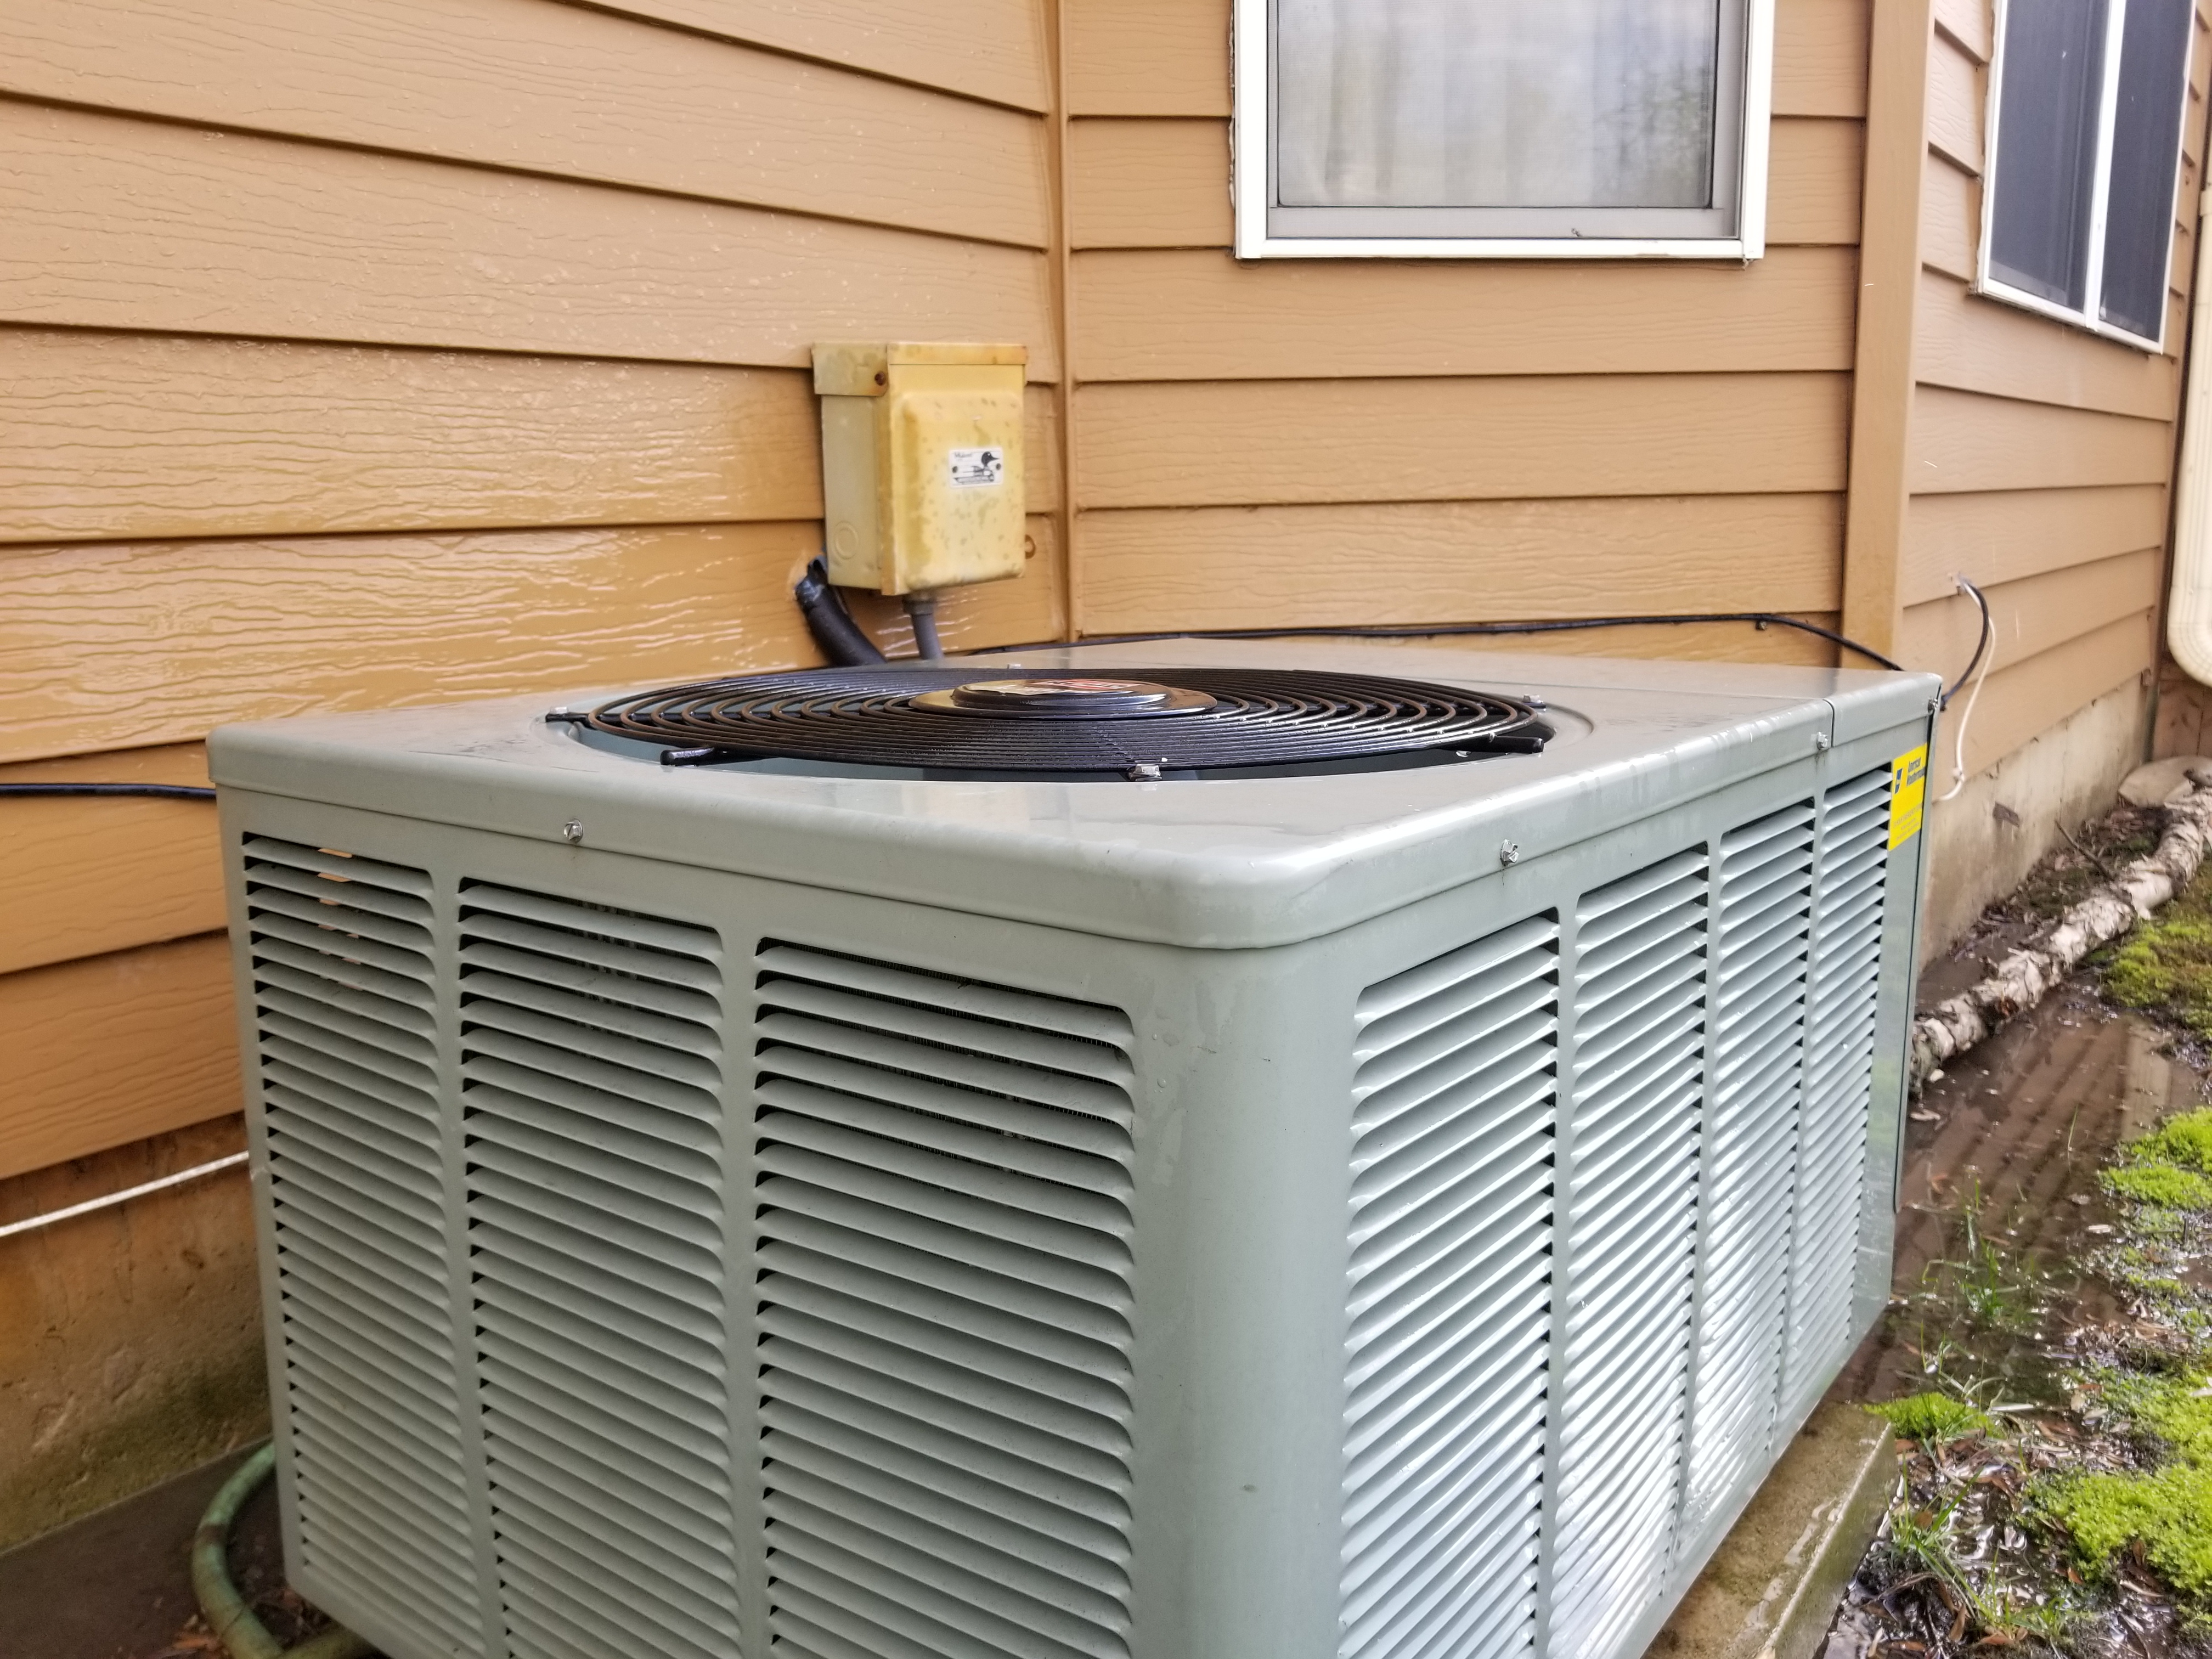 Performed annual maintenance on the Rheem air conditioning system and made adjustments to improve the overall efficiency and life expectancy of the equipment